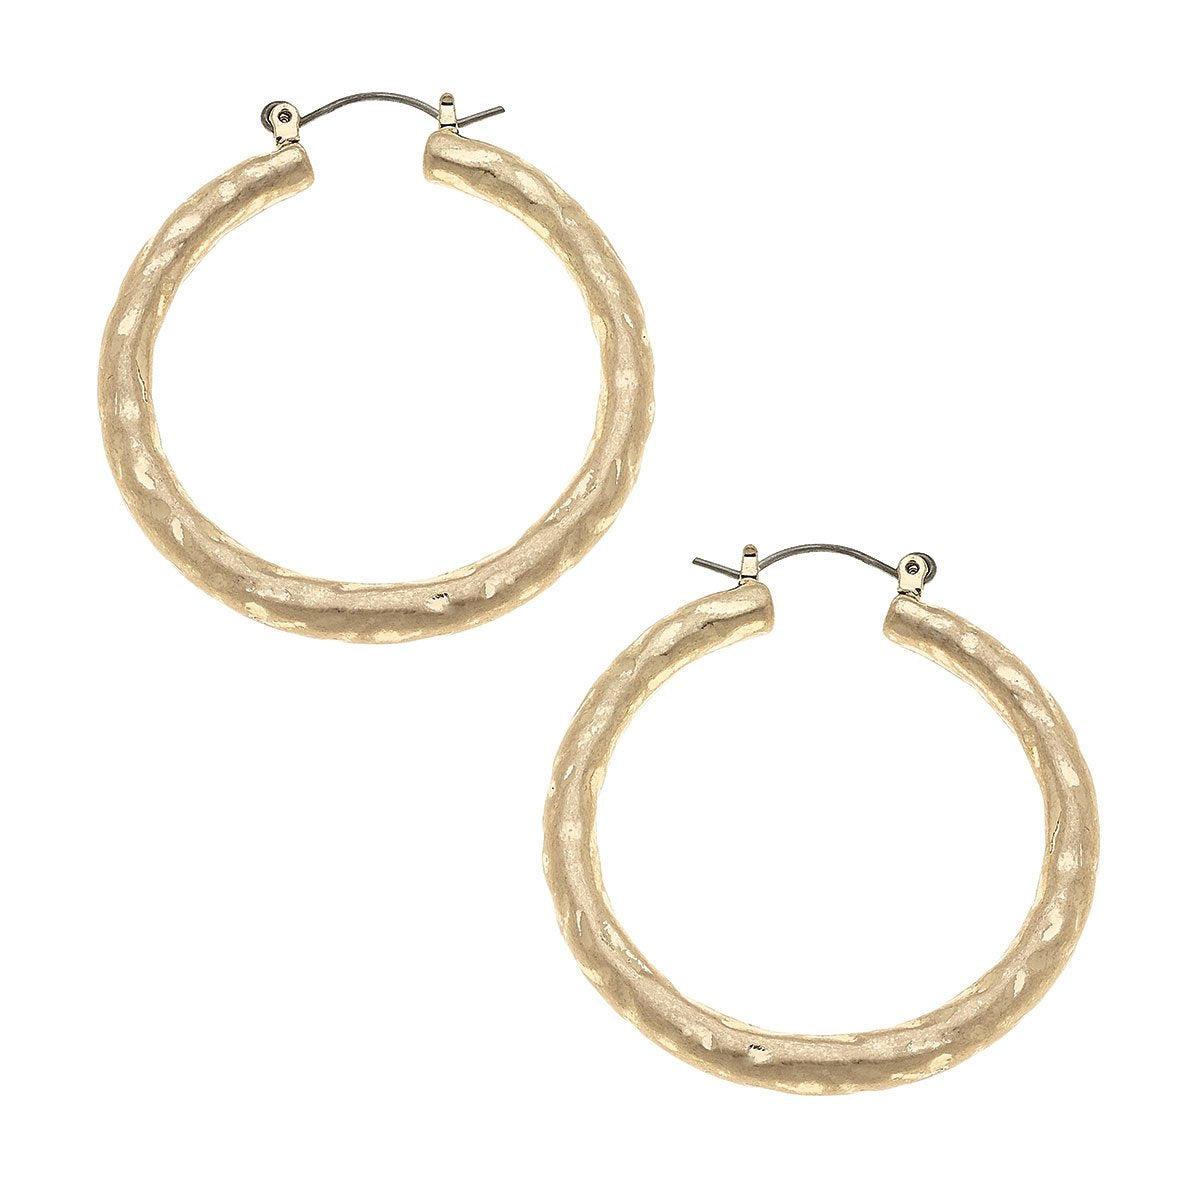 Hammered Hoop Earrings in Worn Gold